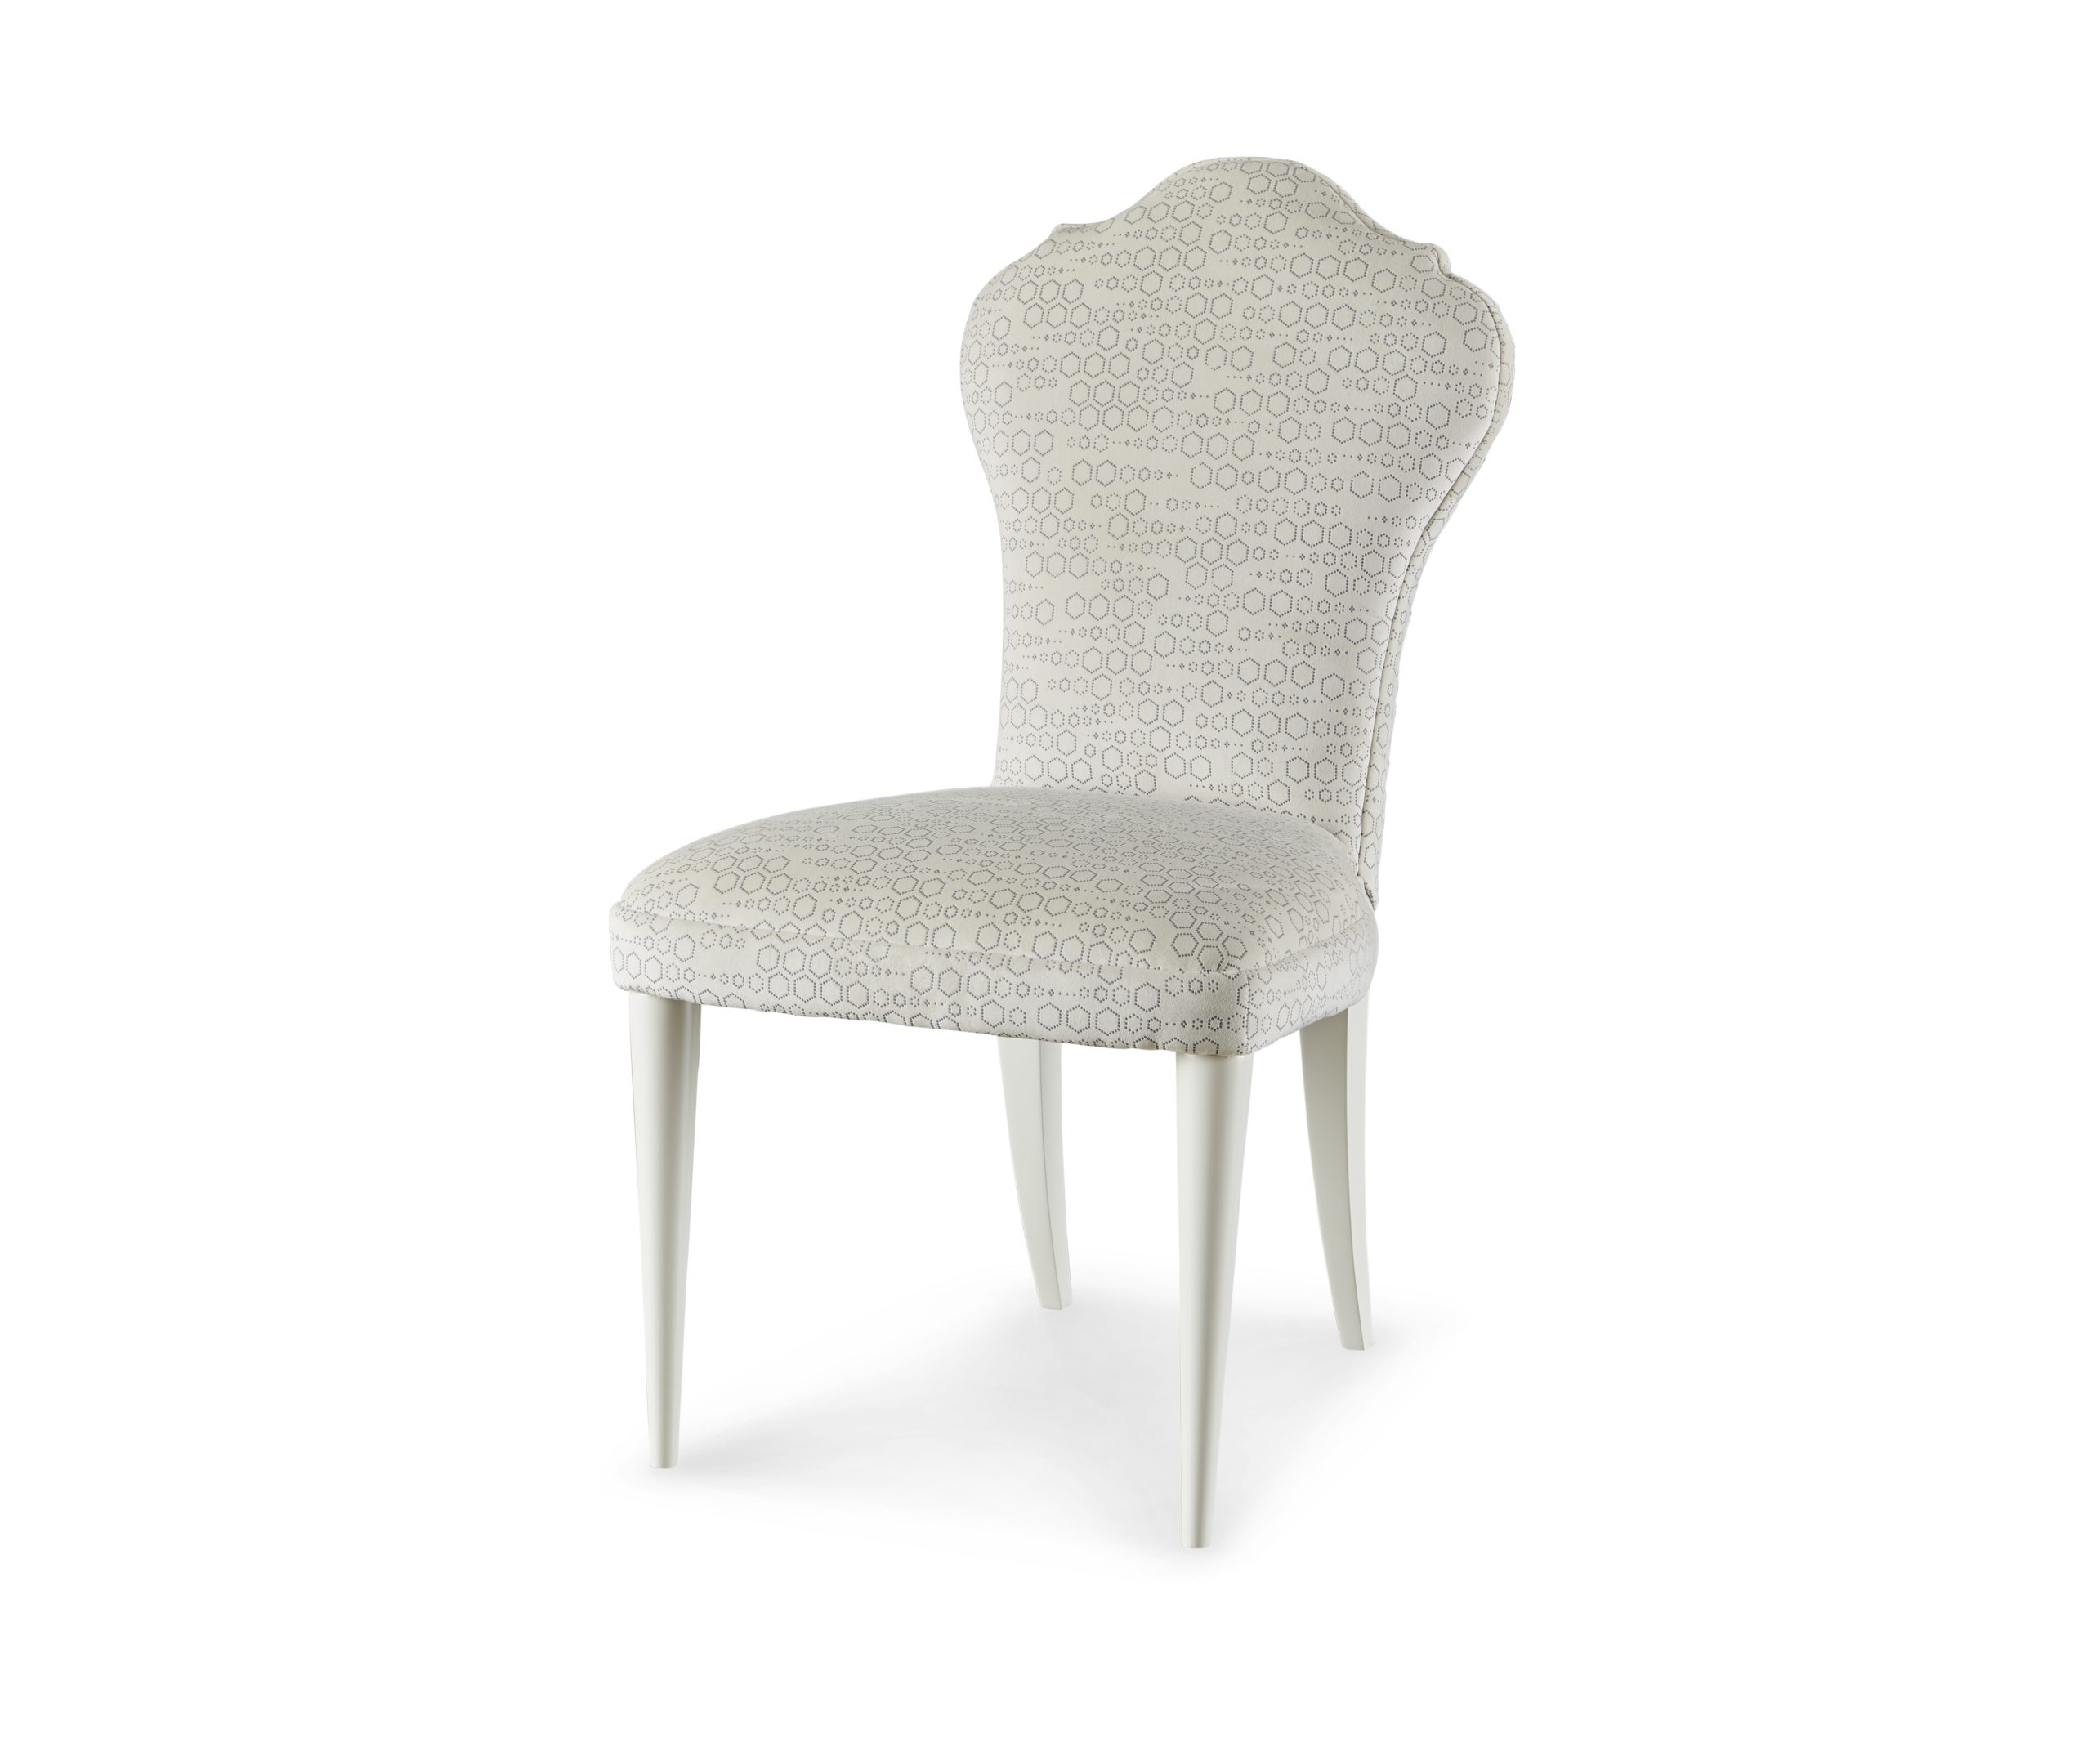 Baker_products_WNWN_nora_chair_BAA3244_FRONT_3QRT-scaled-2